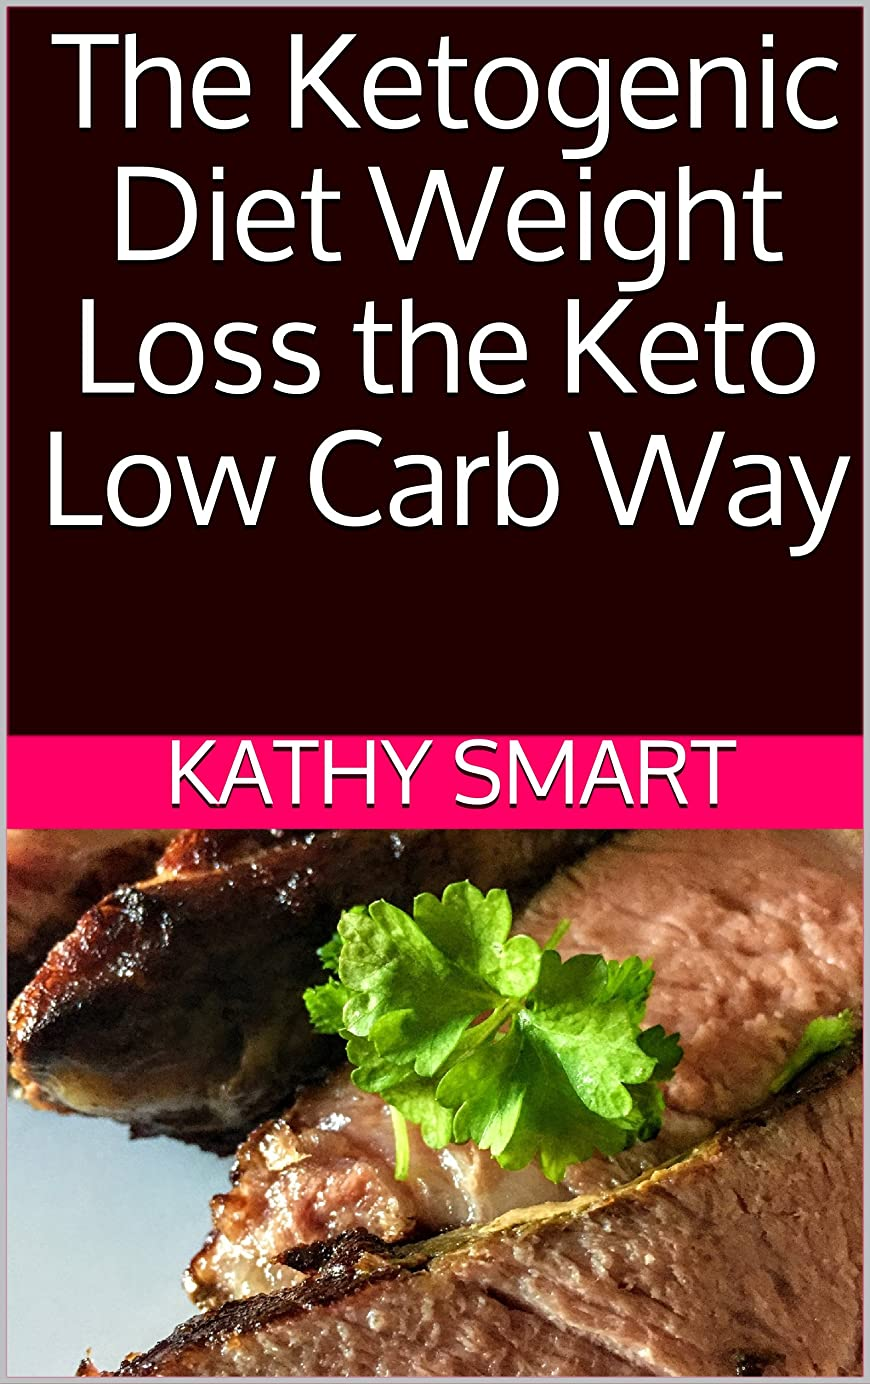 The Ketogenic Diet Weight Loss the Keto Low Carb Way (Aber Health Guides Book 8) (English Edition)